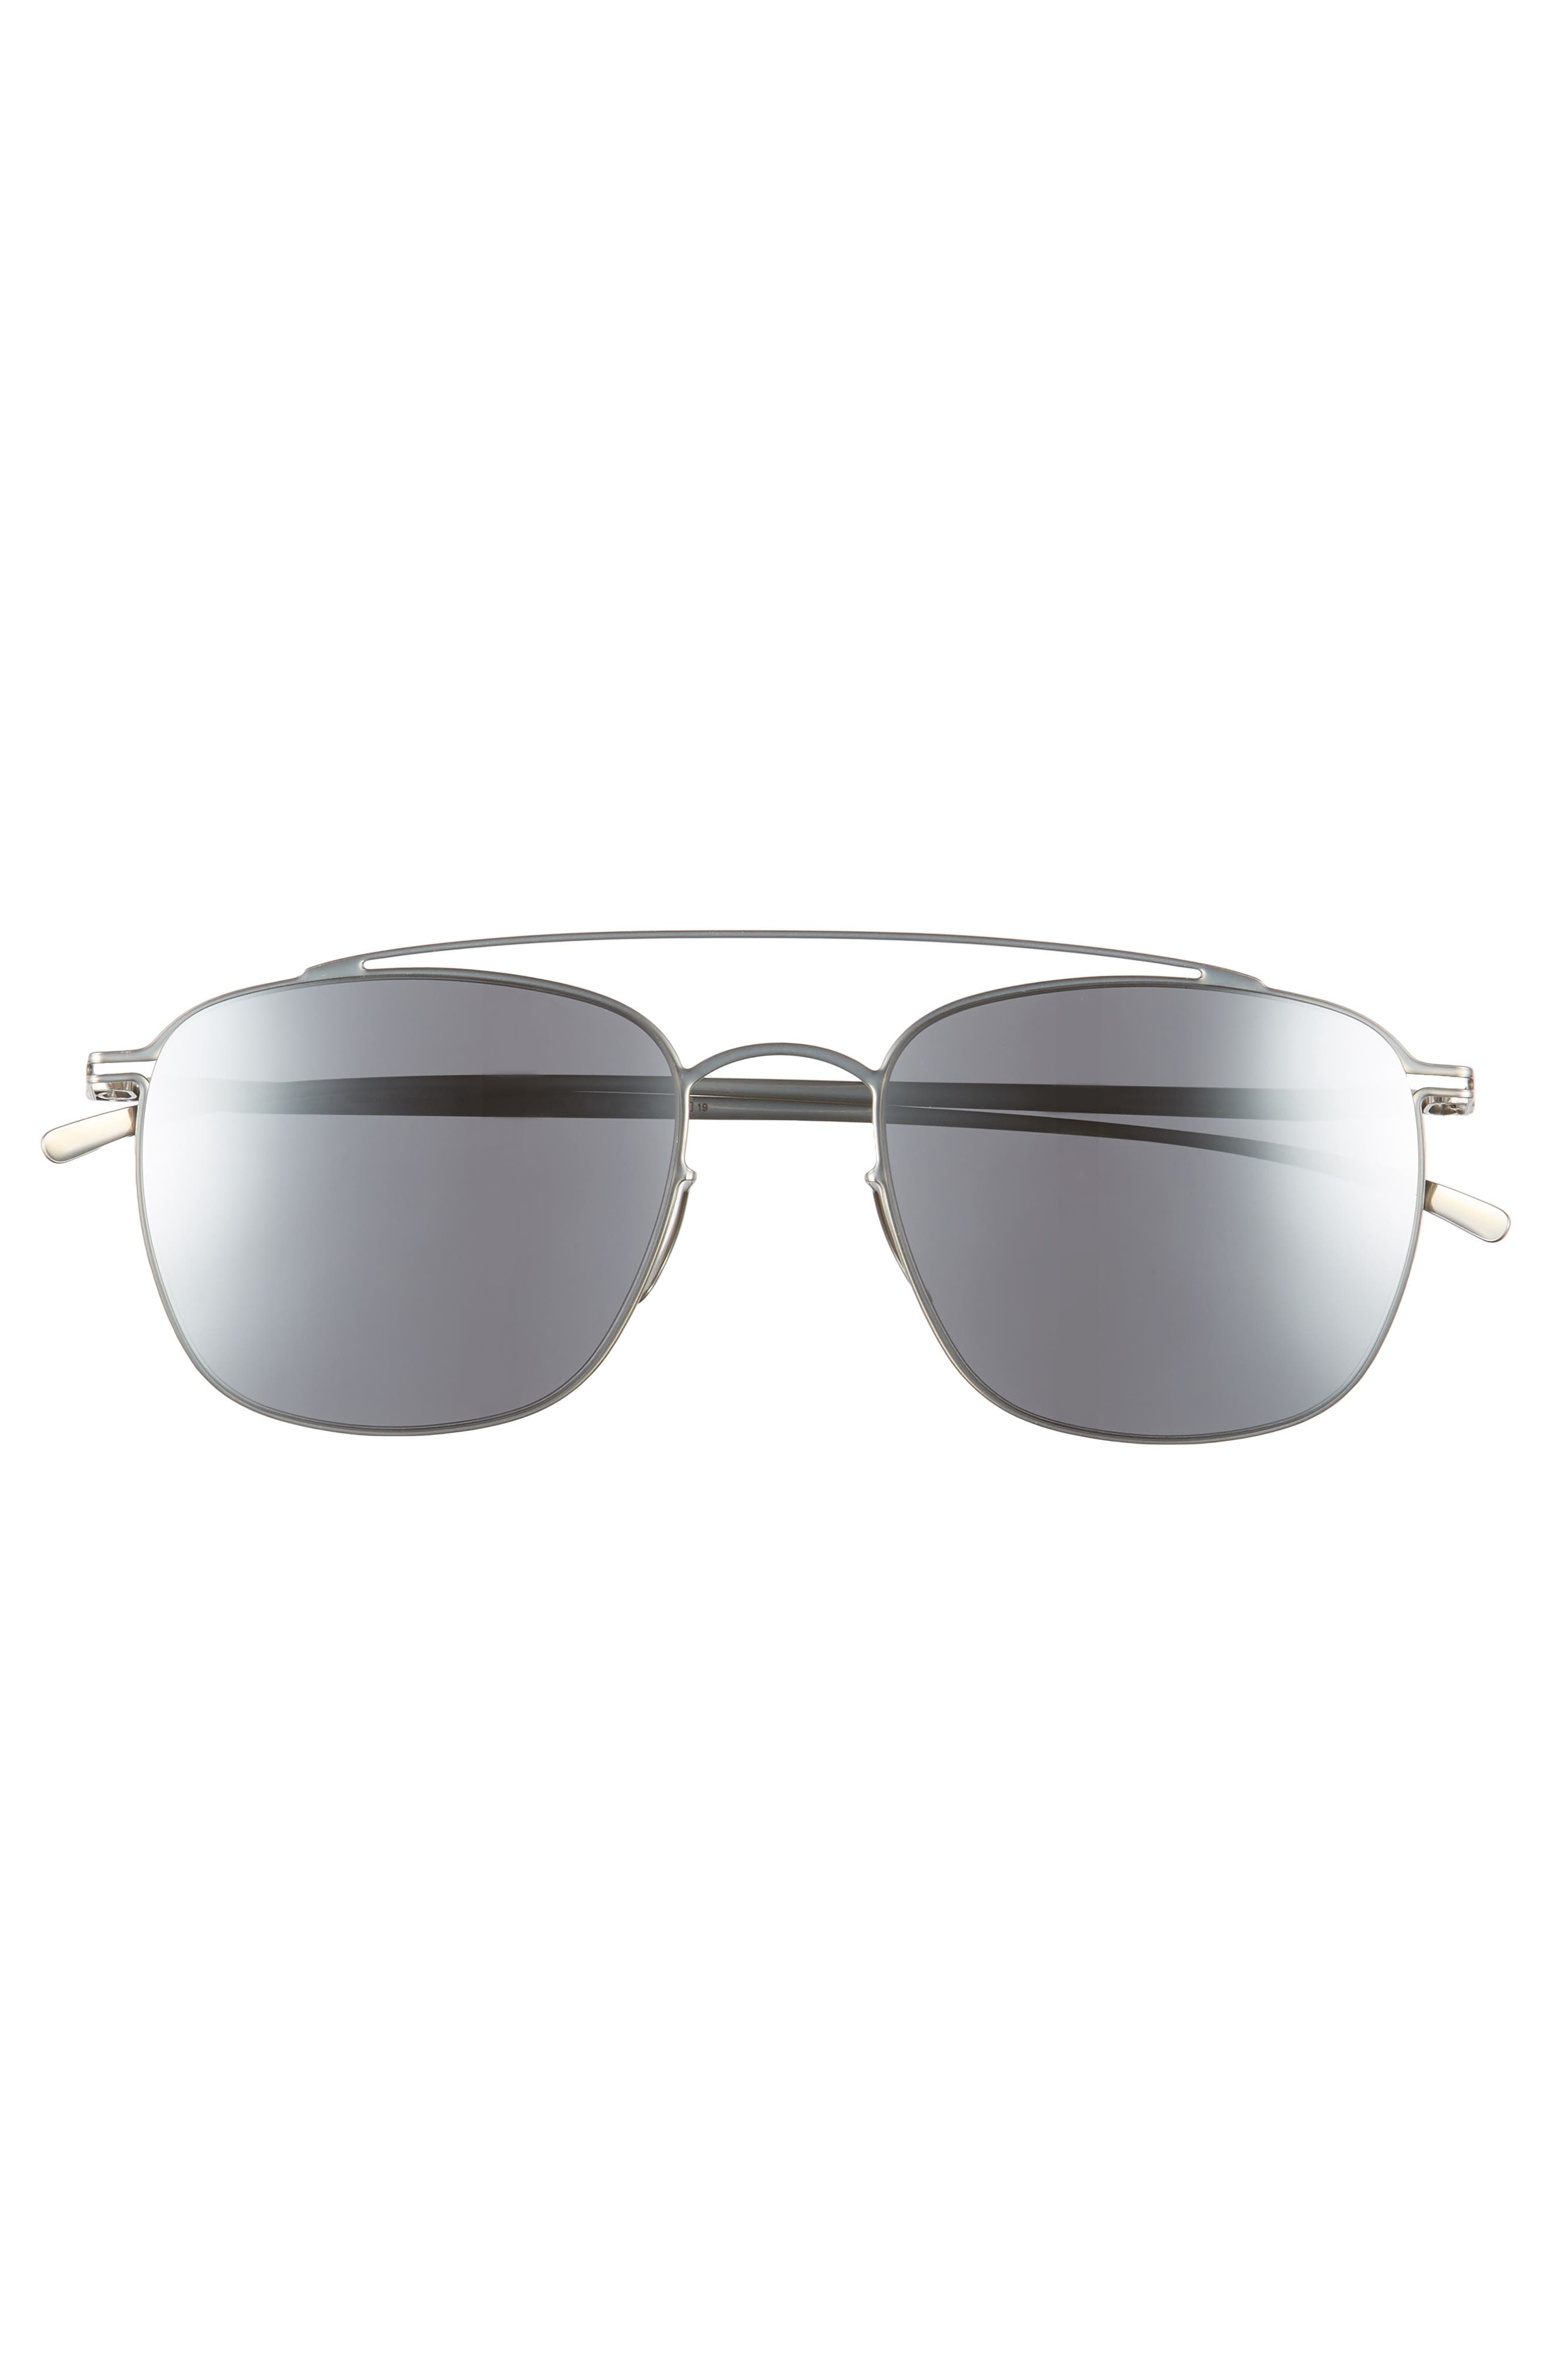 MMESSE007 51mm Aviator Sunglasses,                             Alternate thumbnail 2, color,                             Silver